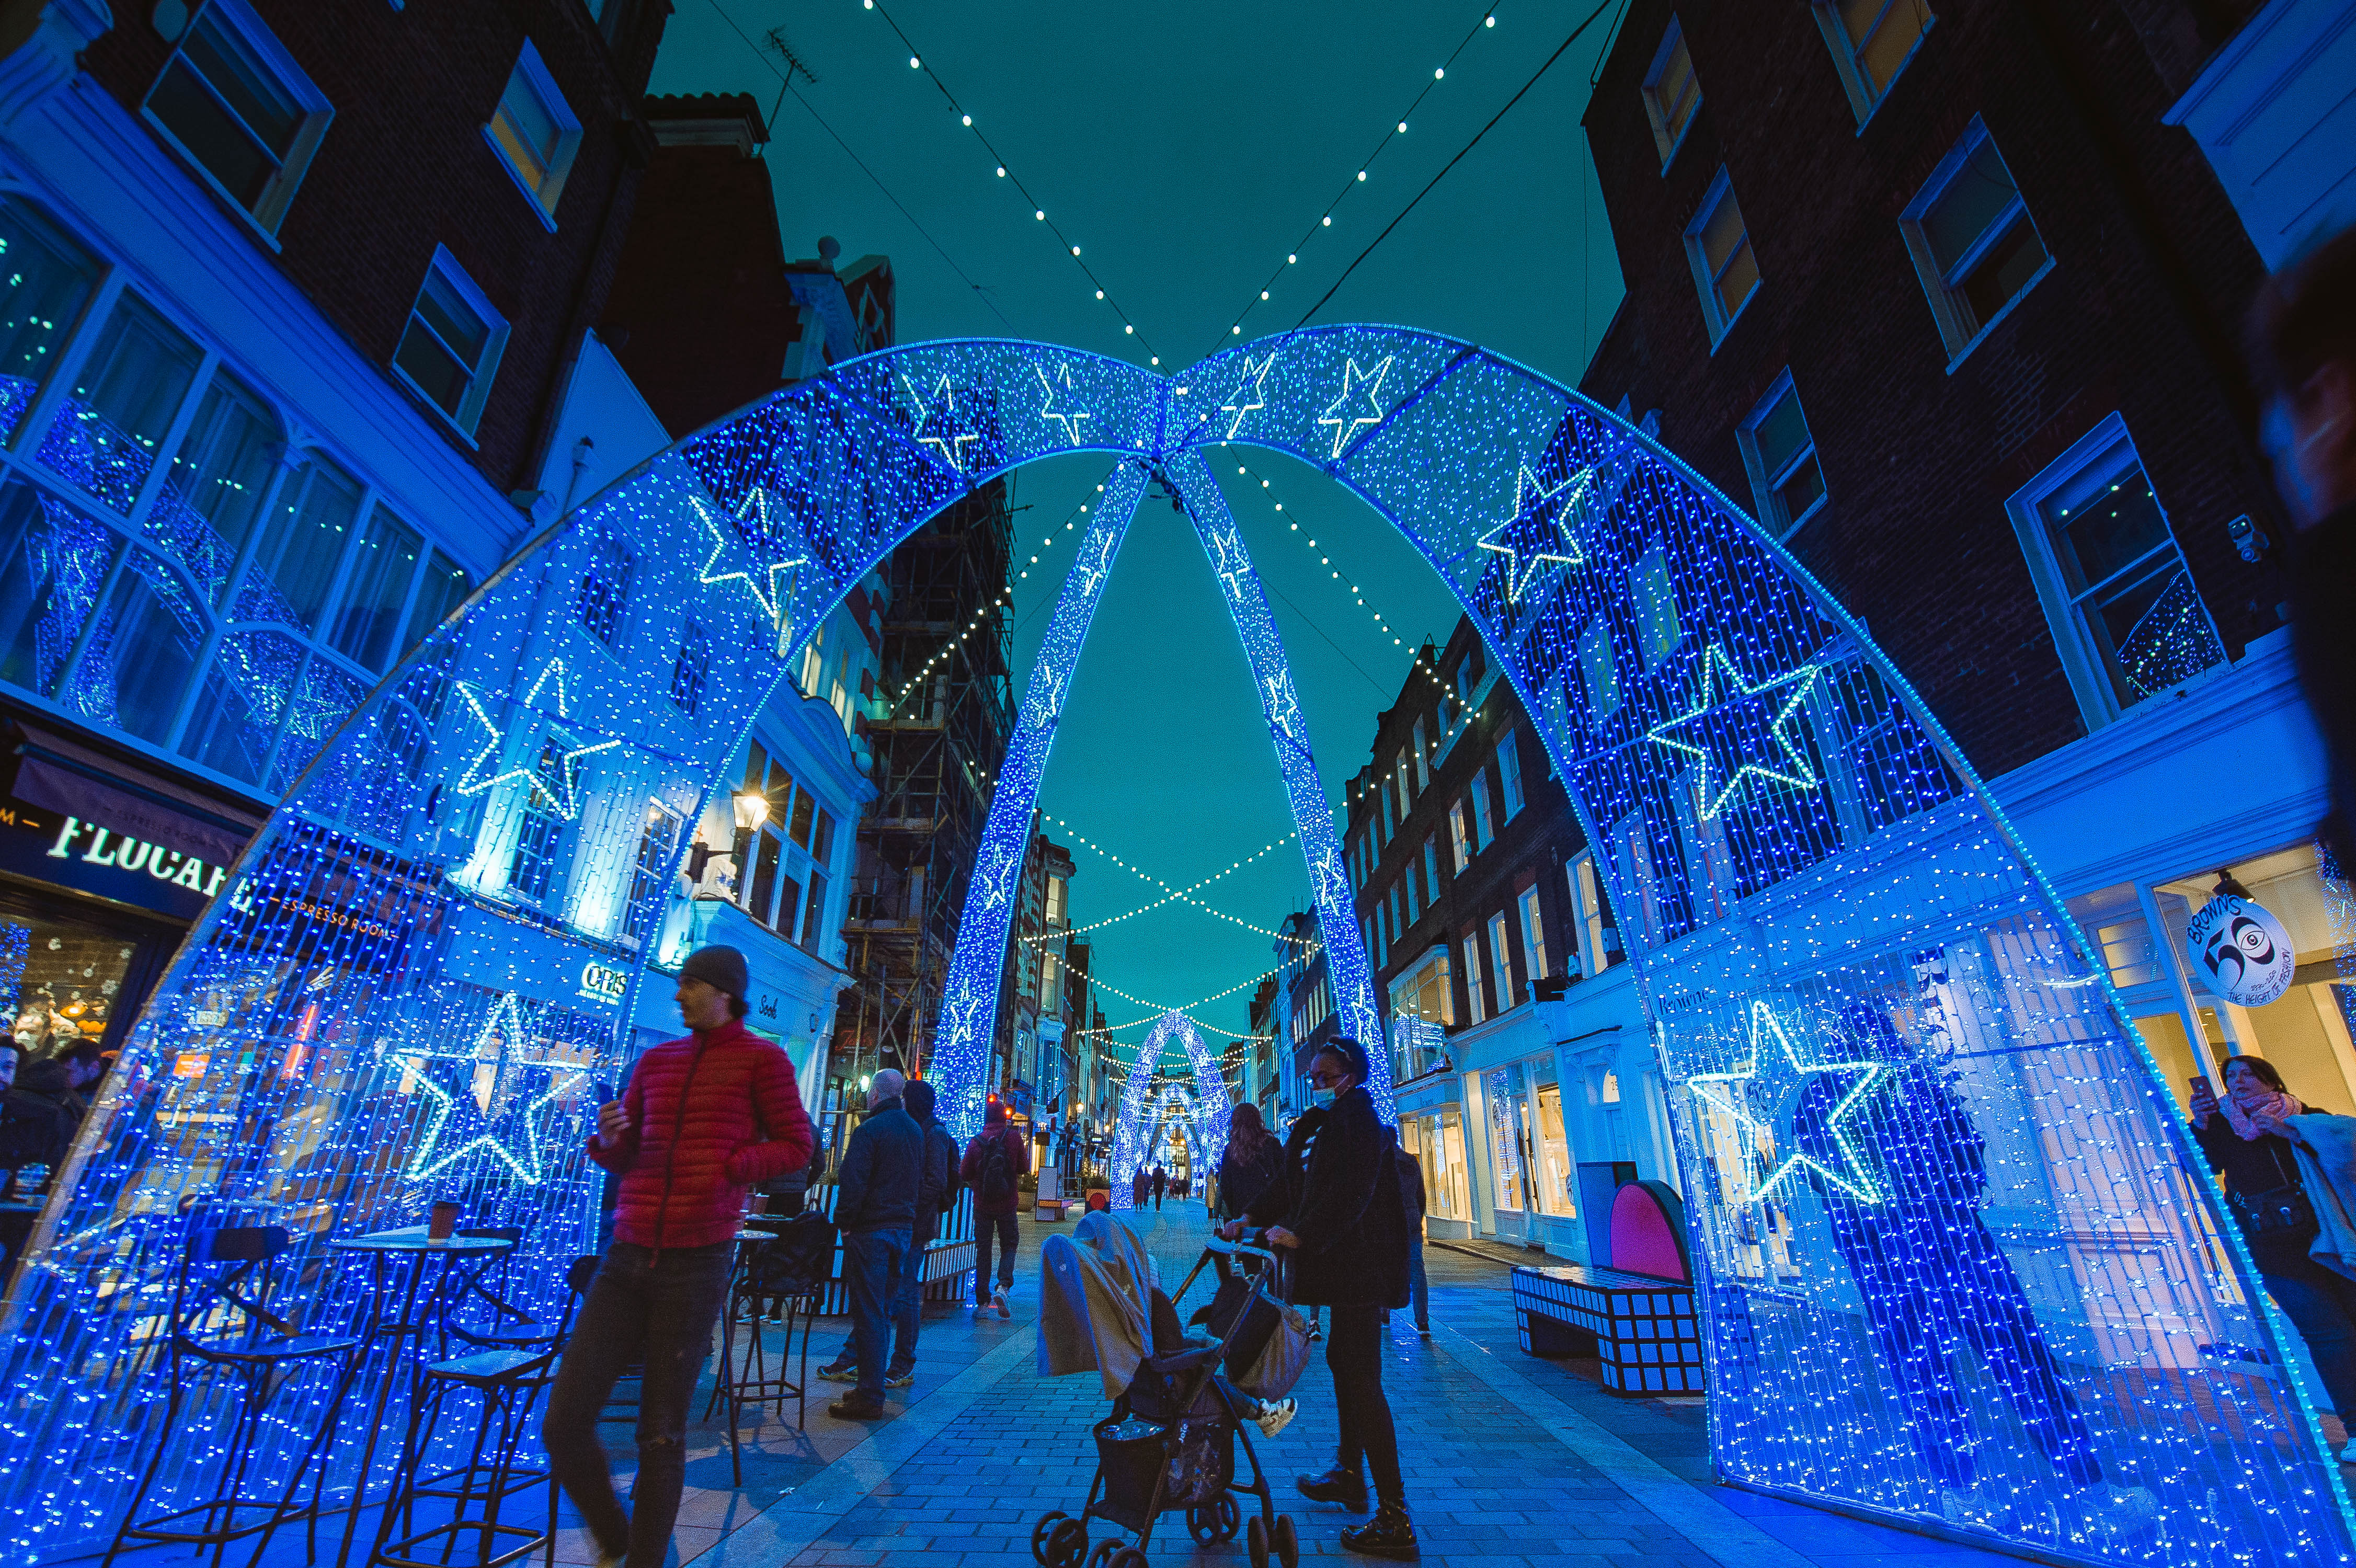 LONDON, ENGLAND - DECEMBER 04:  Christmas light installation on South Molton Street near Bond Street station on December 2, 2020 in London, England. Many Christmas events have been cancelled this year due to the Coronavirus Pandemic but London is festooned with Christmas Lights across the capital.  (Photo by Joseph Okpako/Getty Images)